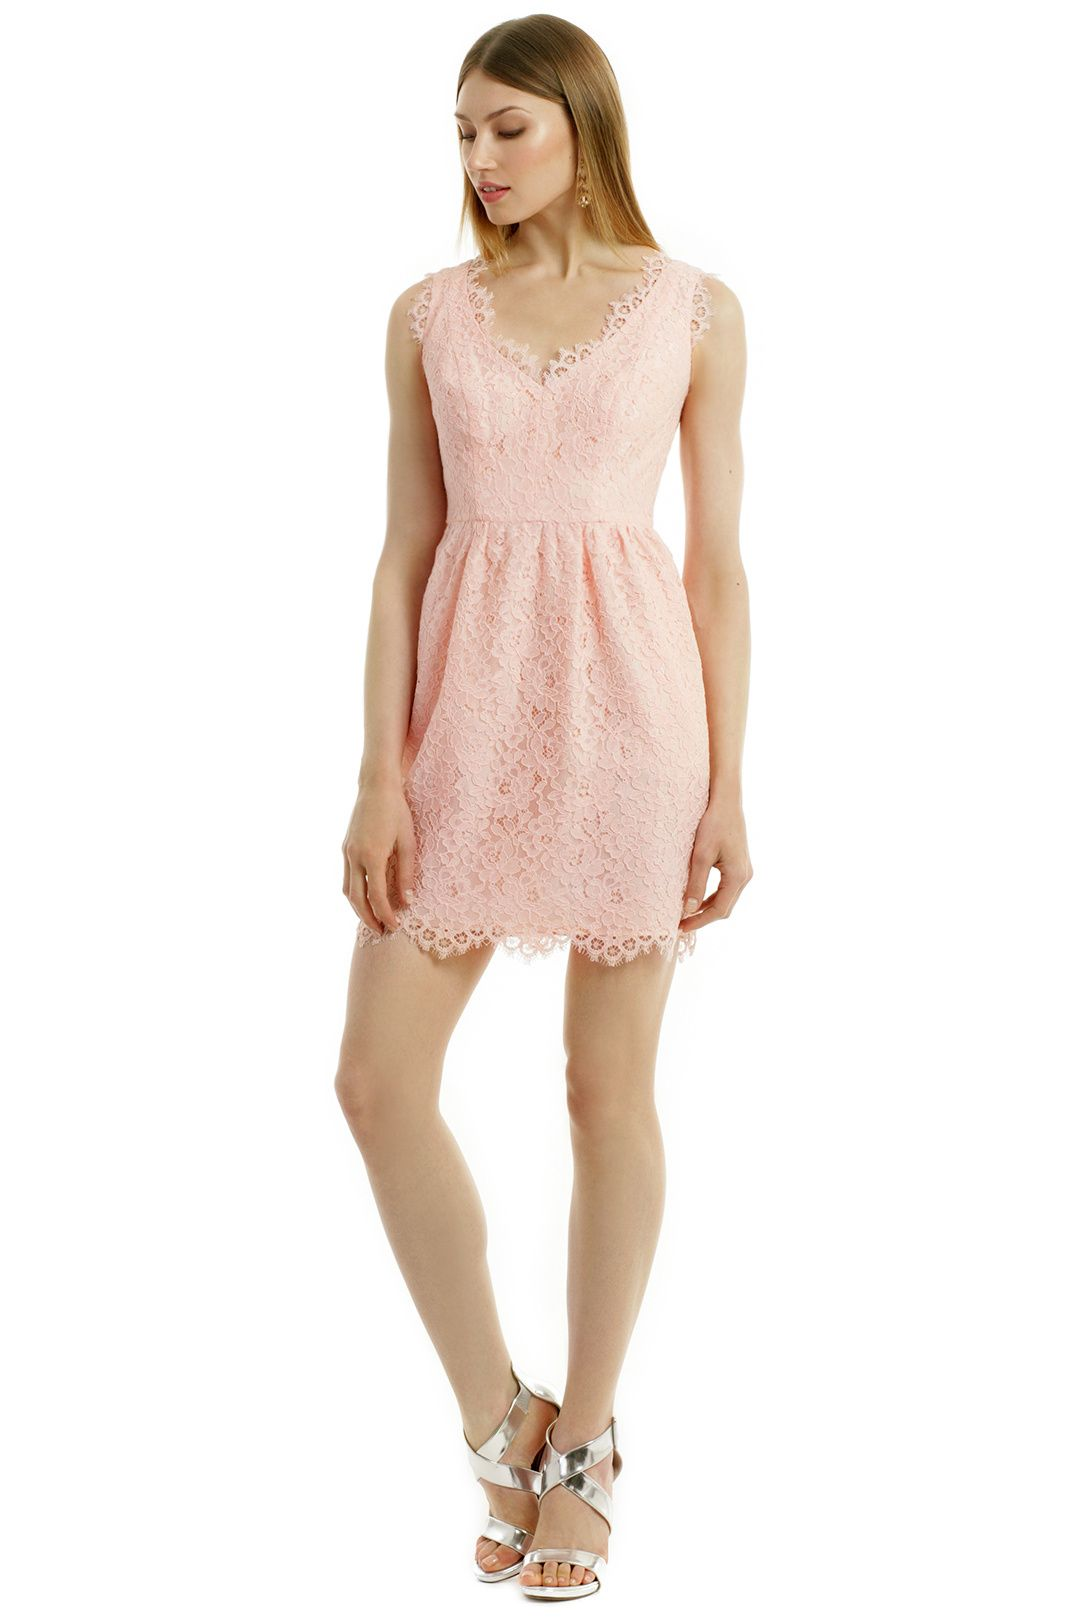 Rent Petal Lace Sierra Dress By Shoshanna For 75 Only At